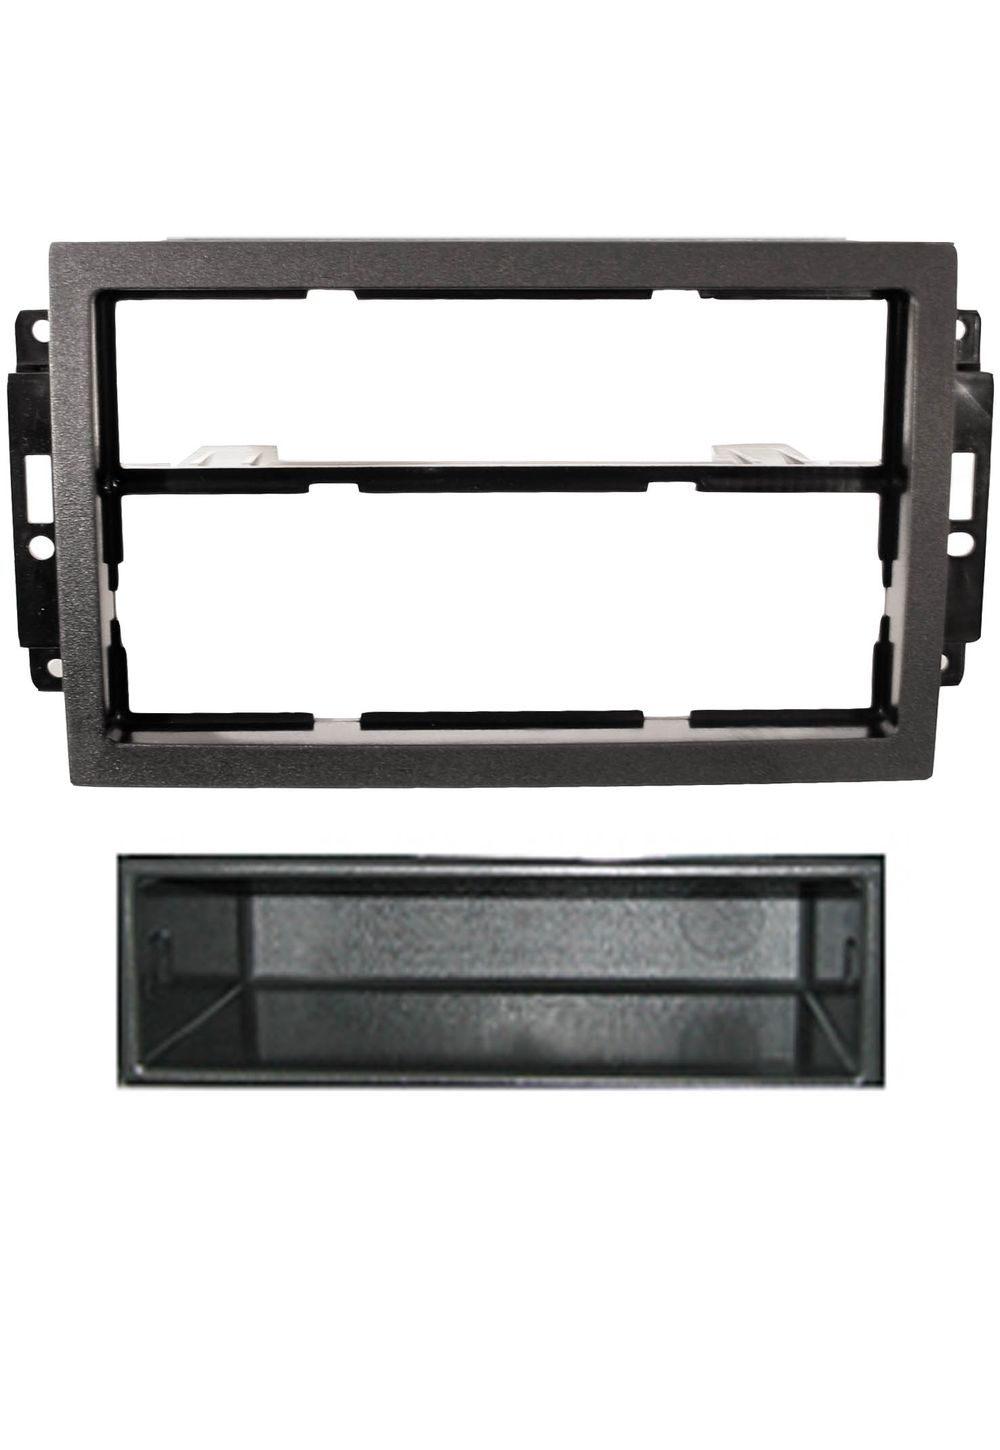 Jeep Wrangler Car Stereo Mounting And Fitting Solutions For Double Din Radio 2x 1 Facia Adaptor